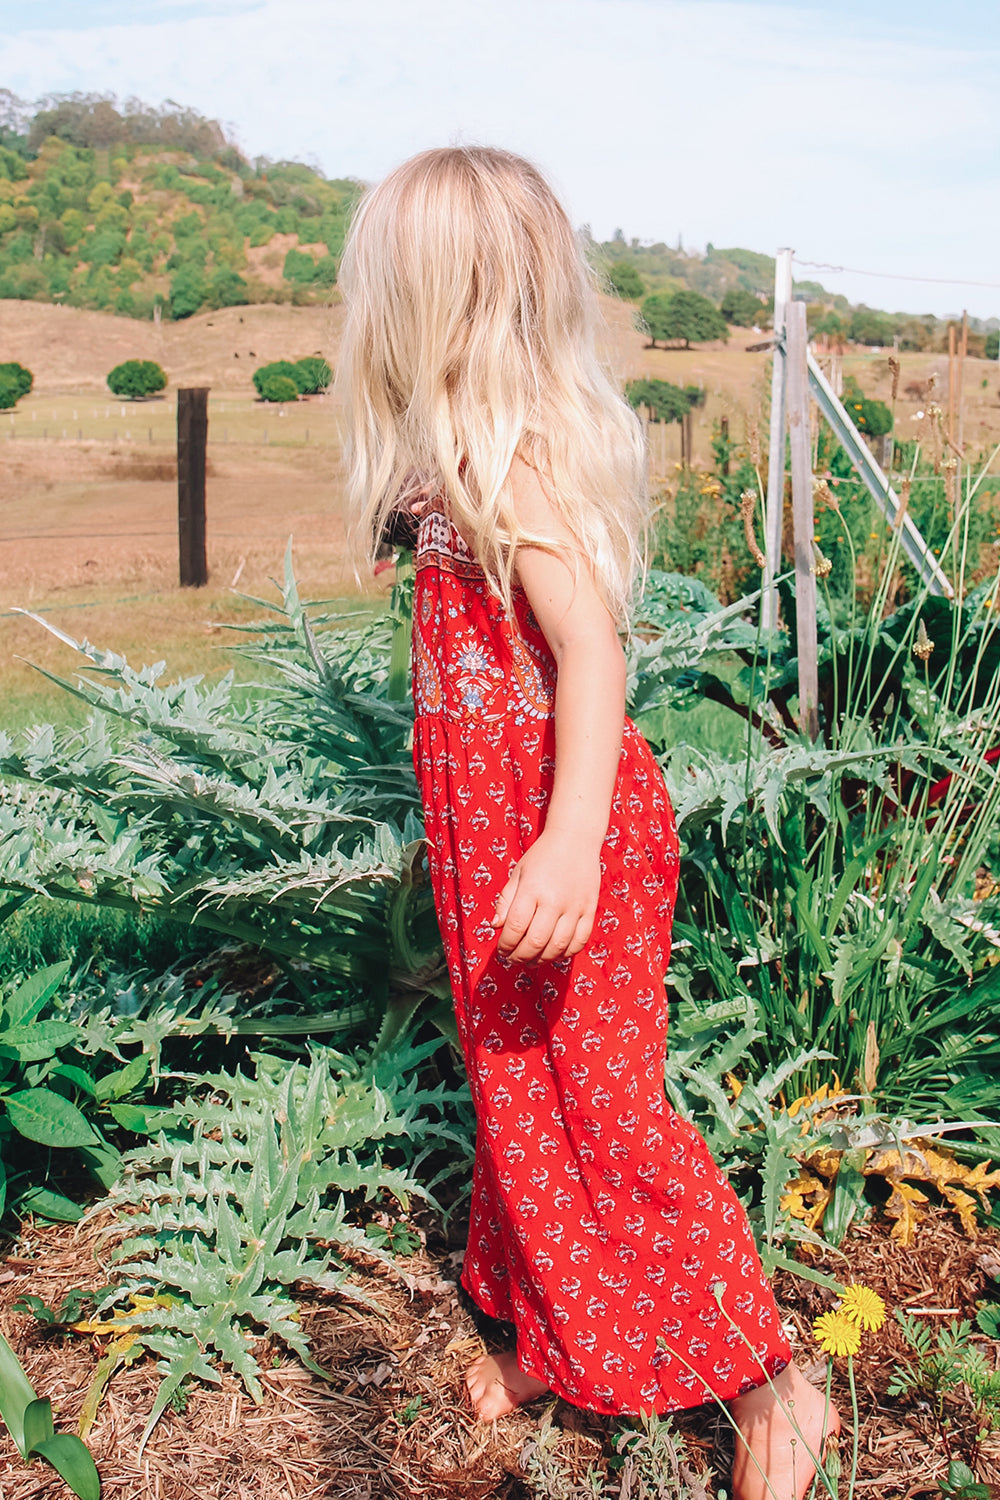 Serafina Kiddies Jumpsuit in Crimson Skies